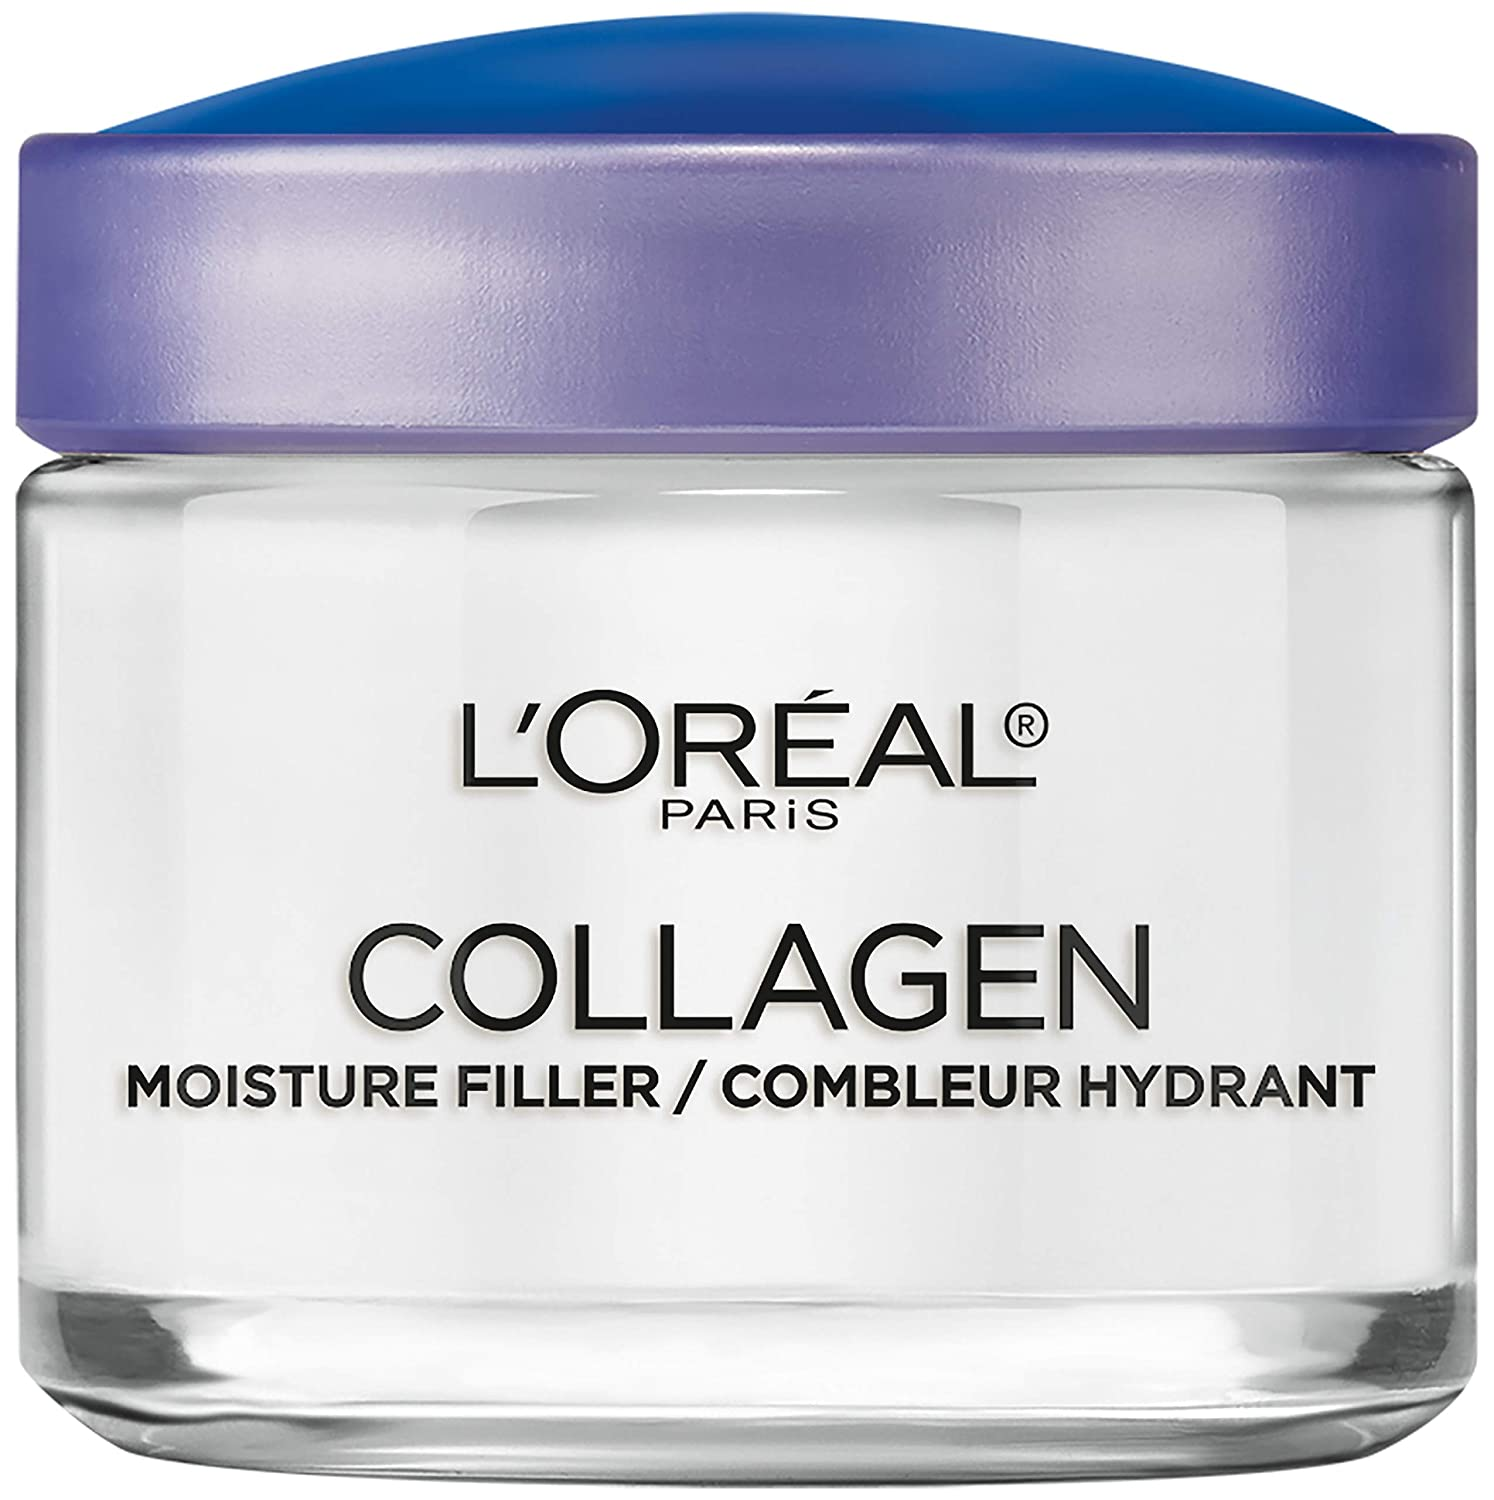 Collagen Face Moisturizer by L'Oreal Paris Skin Care I Day and Night Cream I Anti-Aging